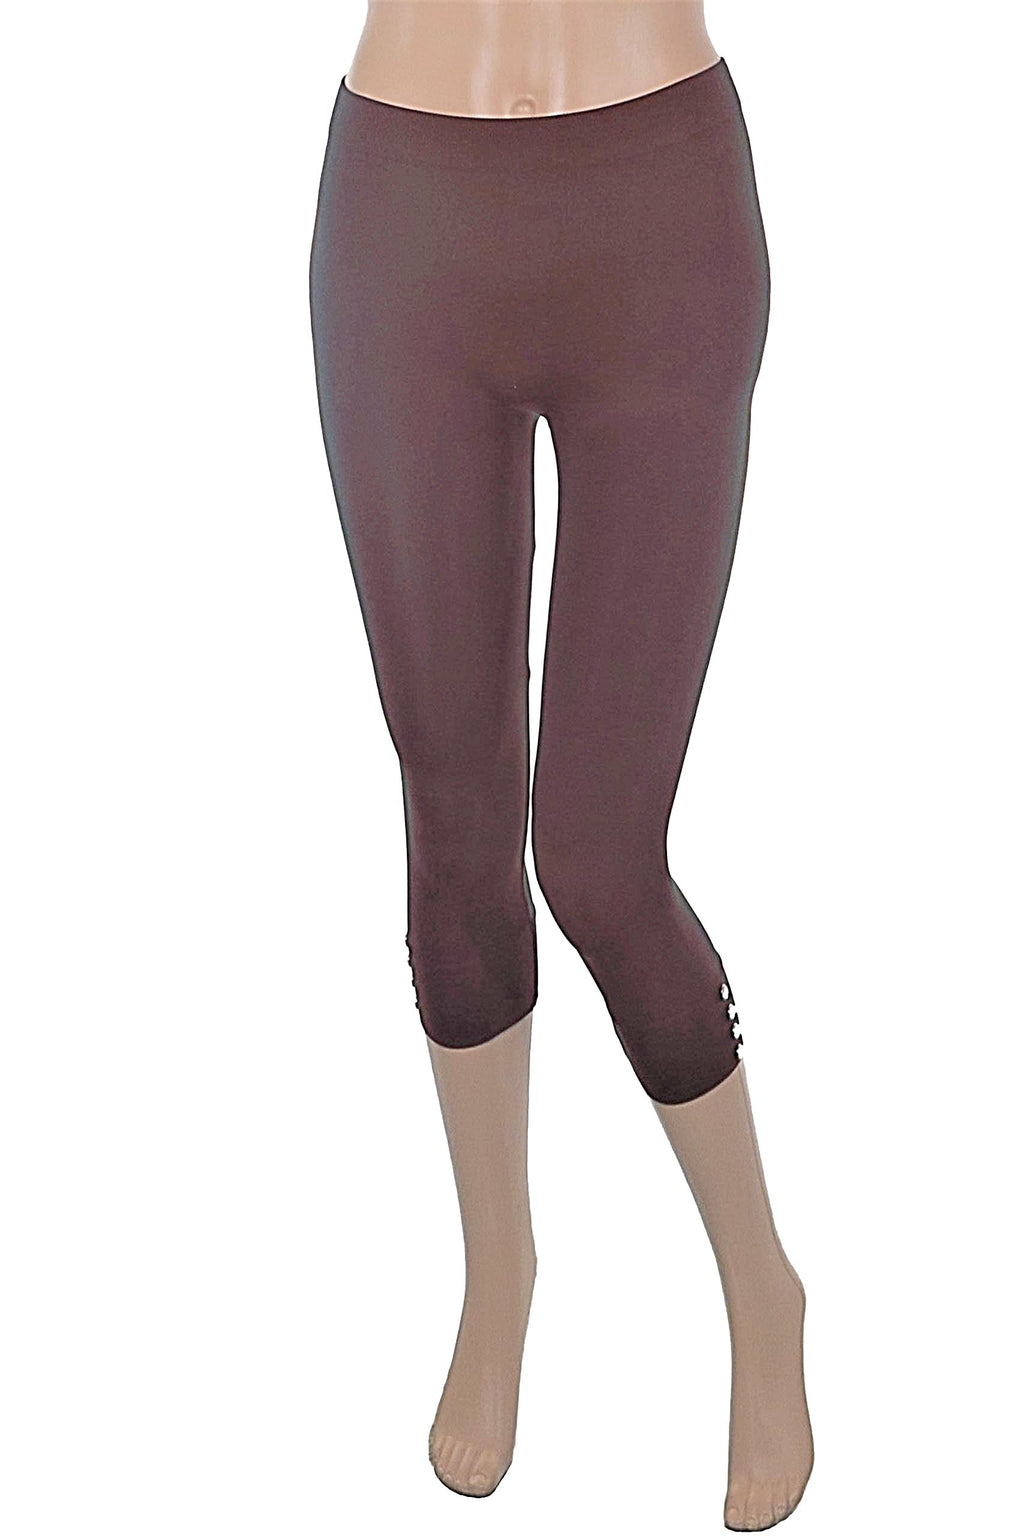 4 Button Capri Leggings - One Size Fits All